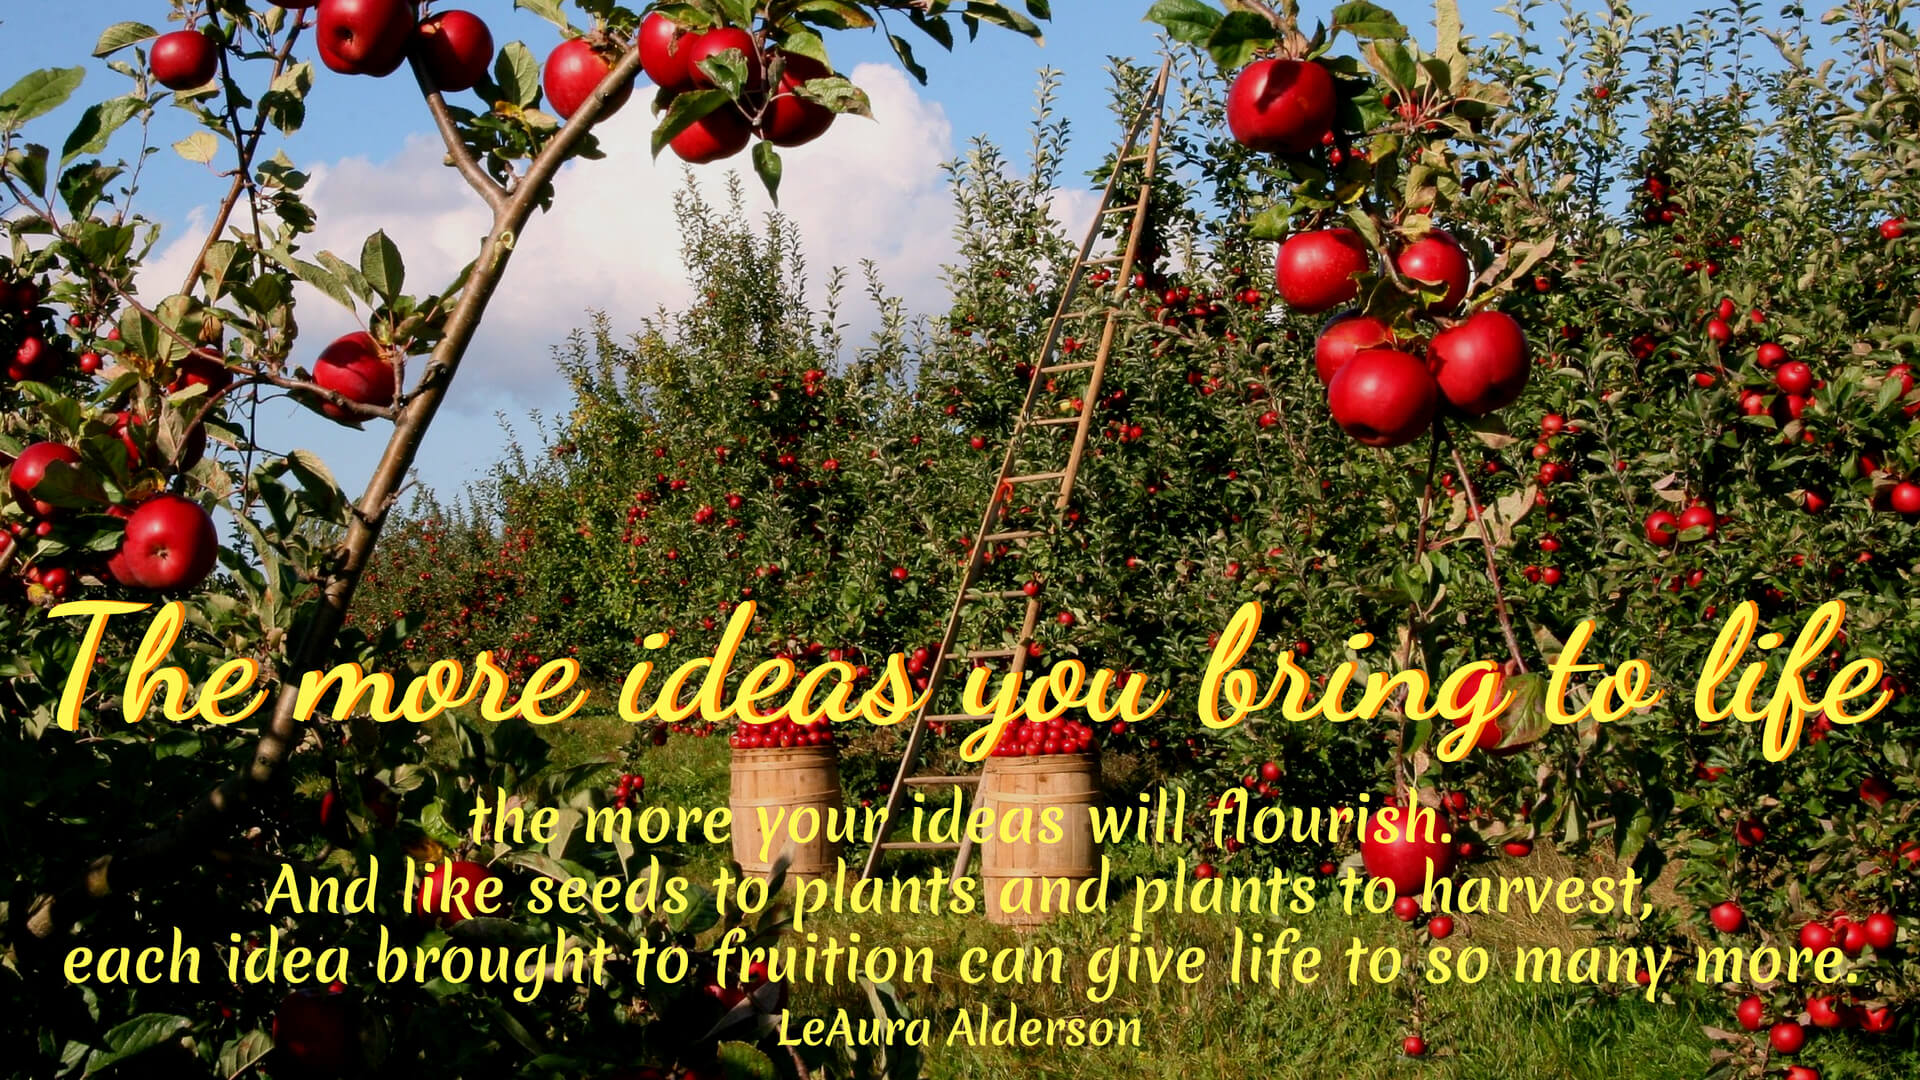 The more ideas you bring to life, the more your ideas will flourish. And like seeds to plants, and plants to harvest, each idea brought to fruition can give life to so many more. ~LeAura Alderson, cofounder- iCreateDaily.com® #IdeationTools #Creativity #CreativeIdeas #Positivity #iCreateDaily #GardenMetaphor #GardenAnalogy